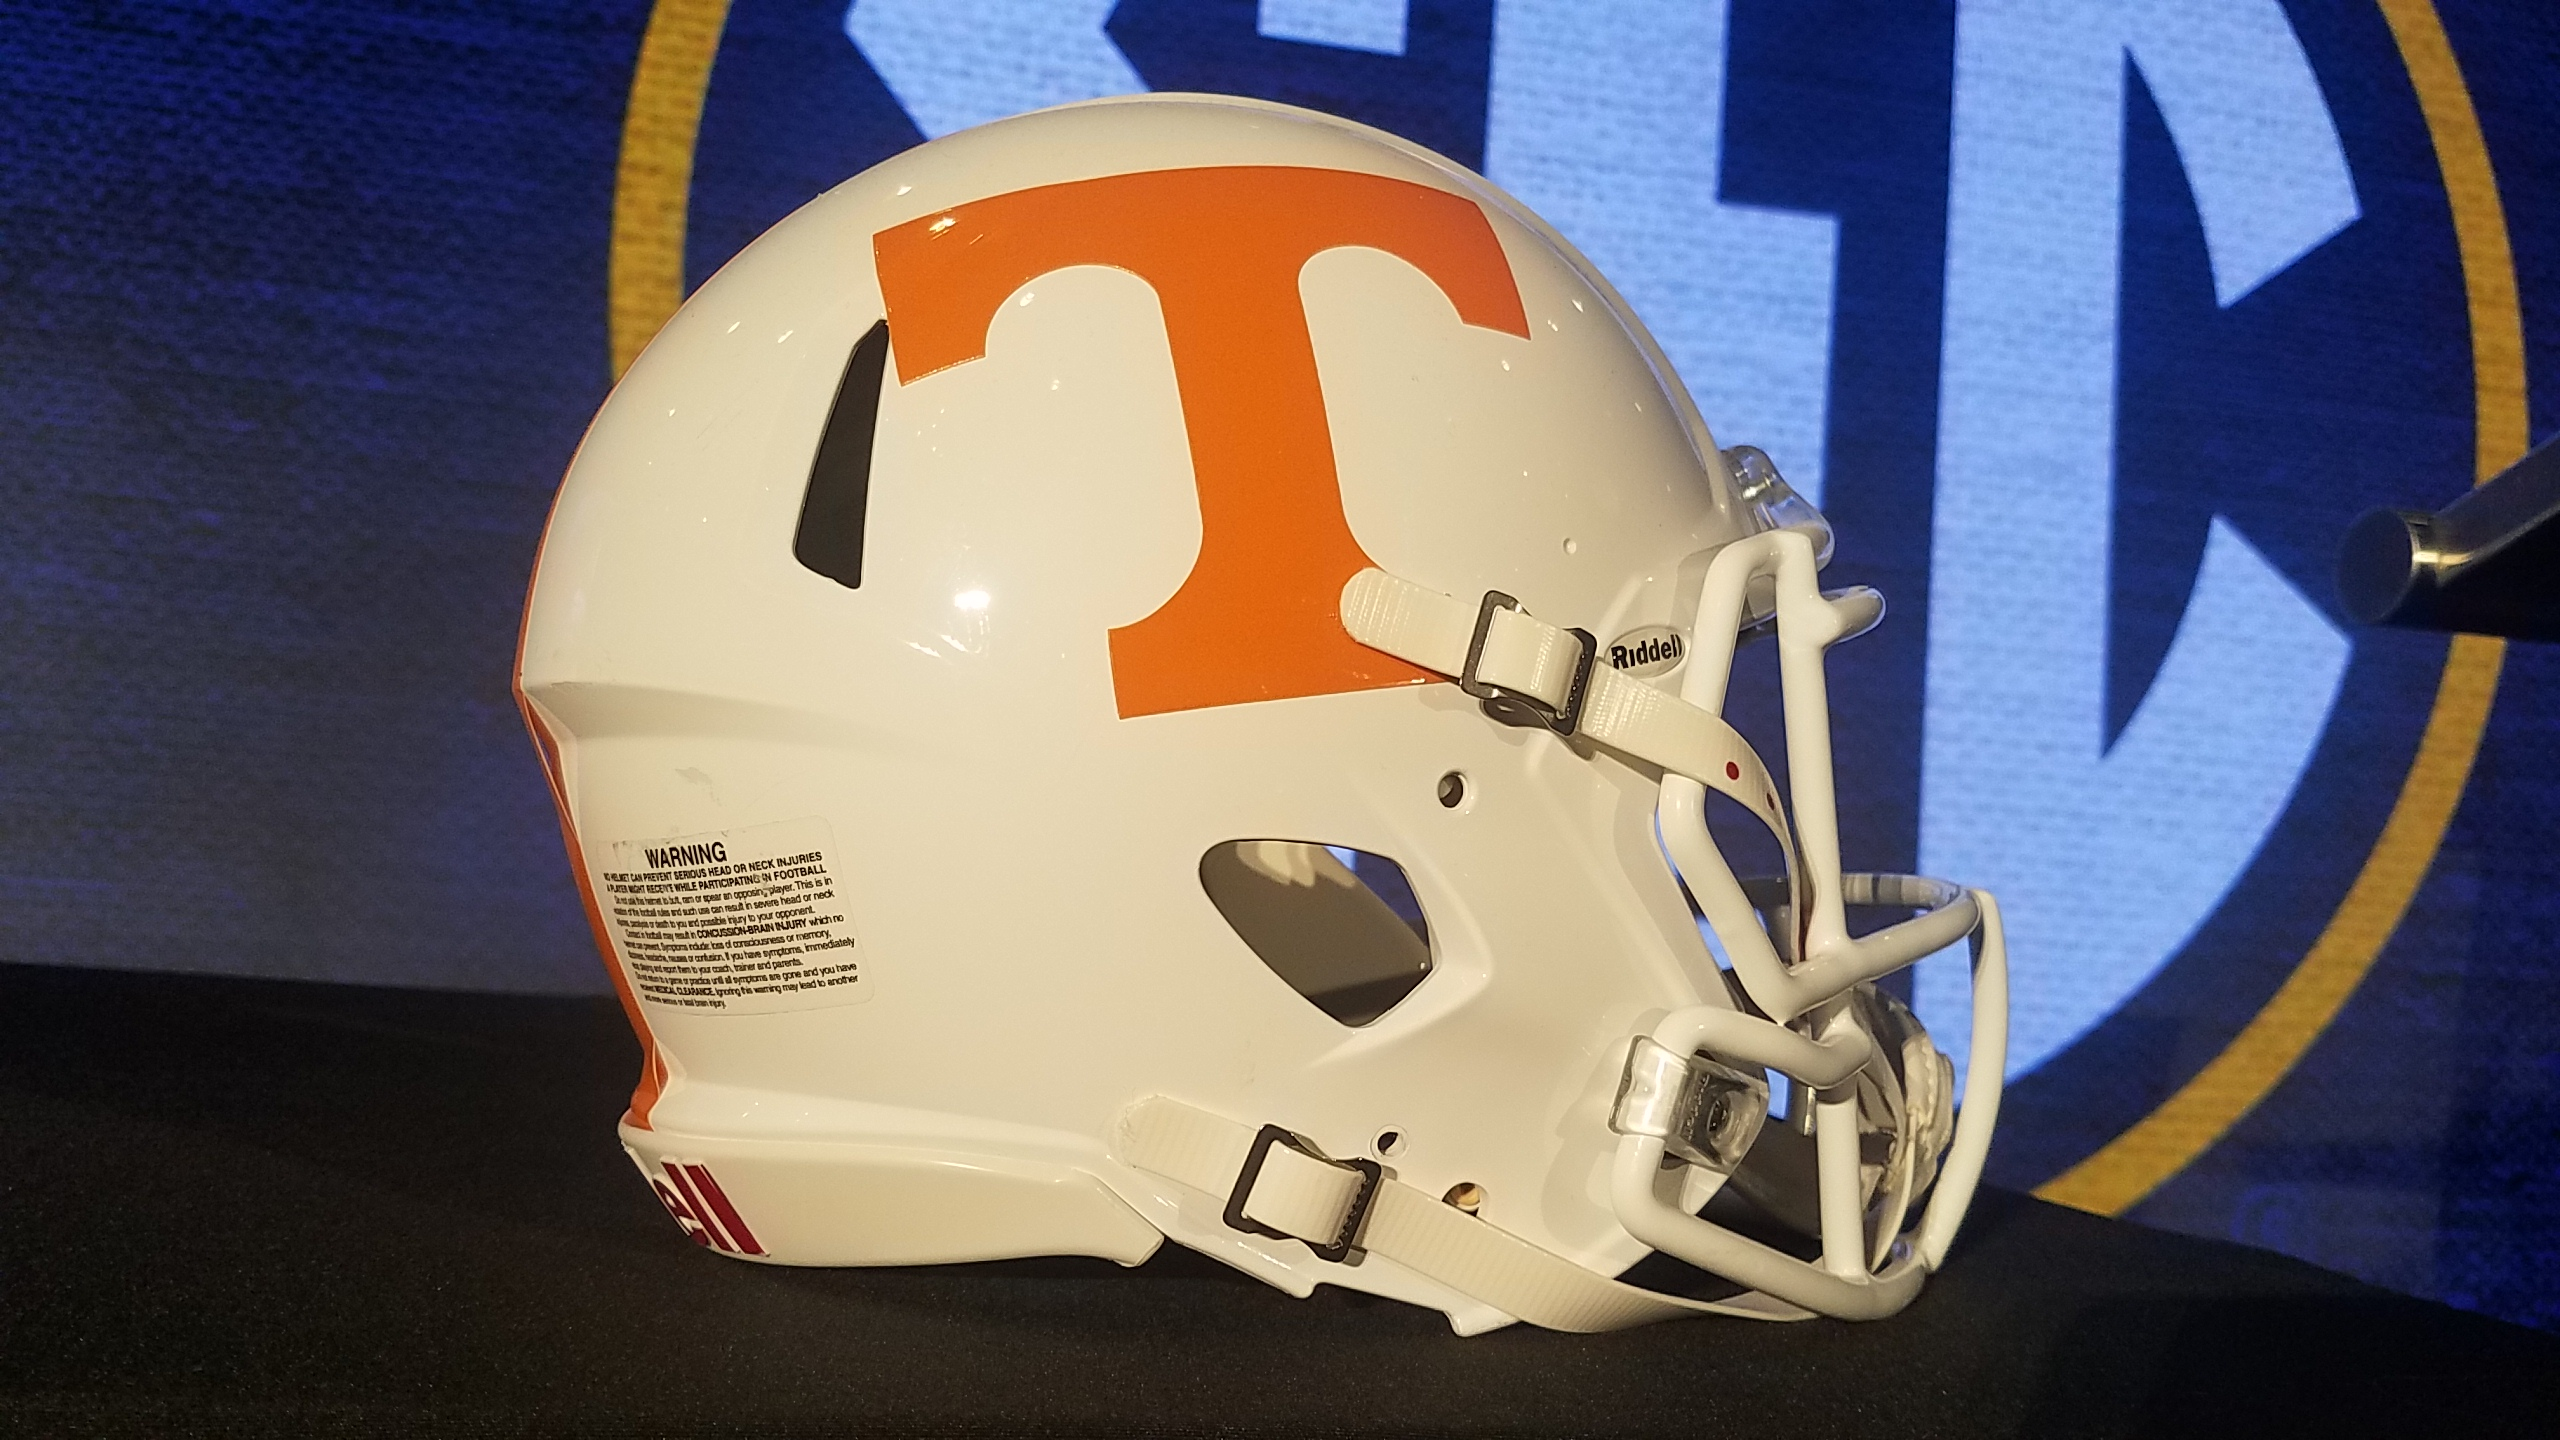 VIDEOS/PODCASTS: Everything from Tennessee at #SECMD21